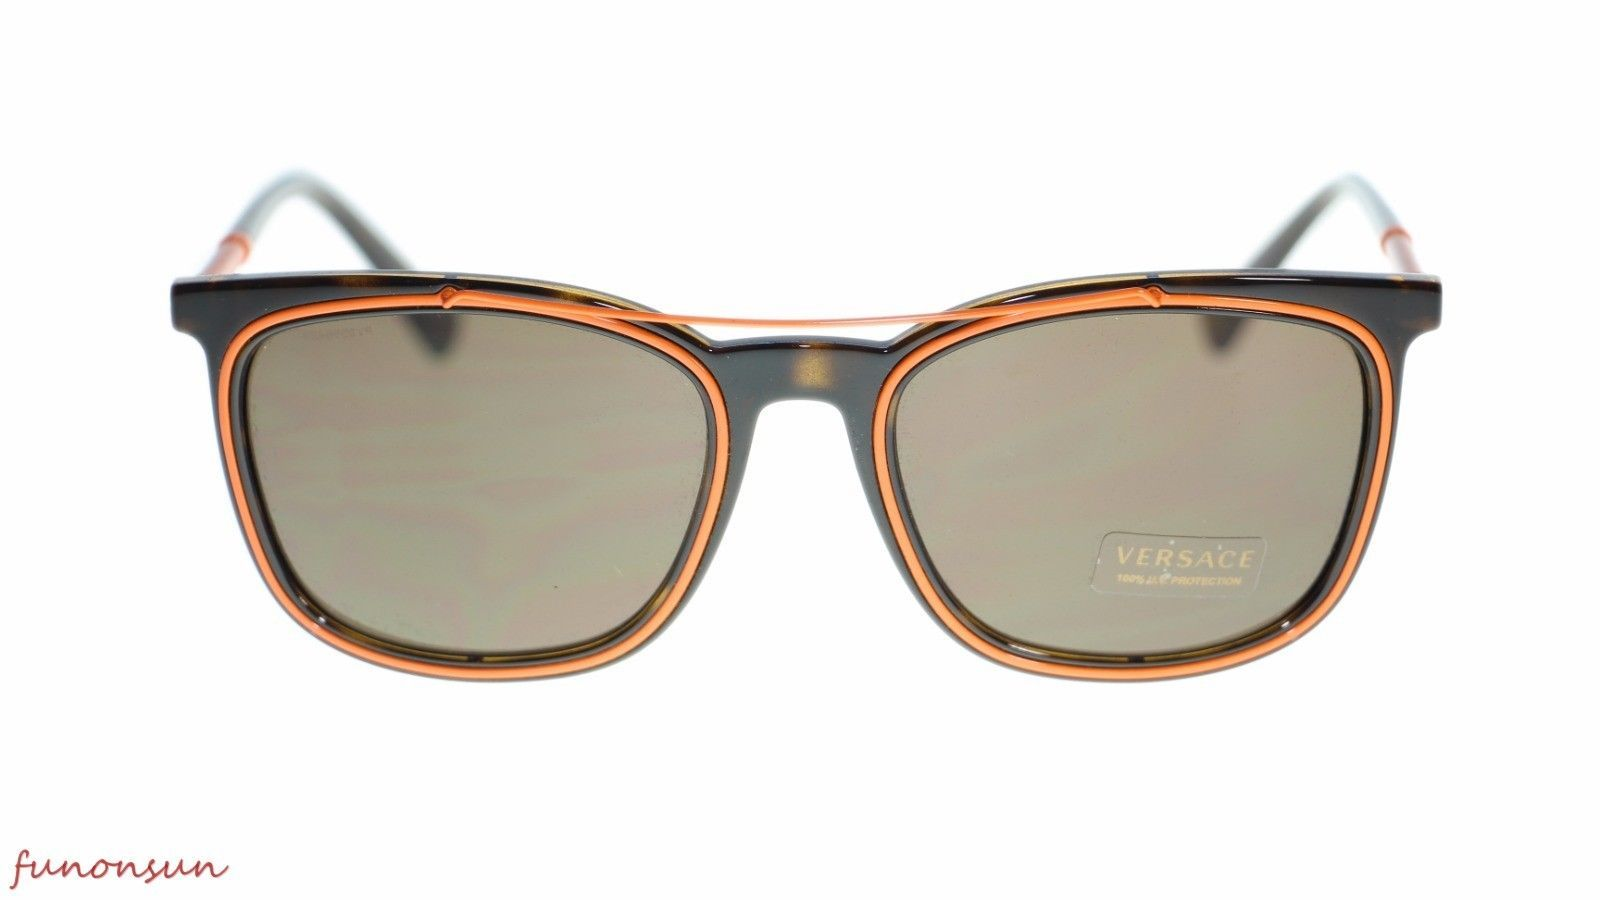 8da2e0bd9682c Versace Men s Square Sunglasses VE4335 10873 and 23 similar items. S l1600